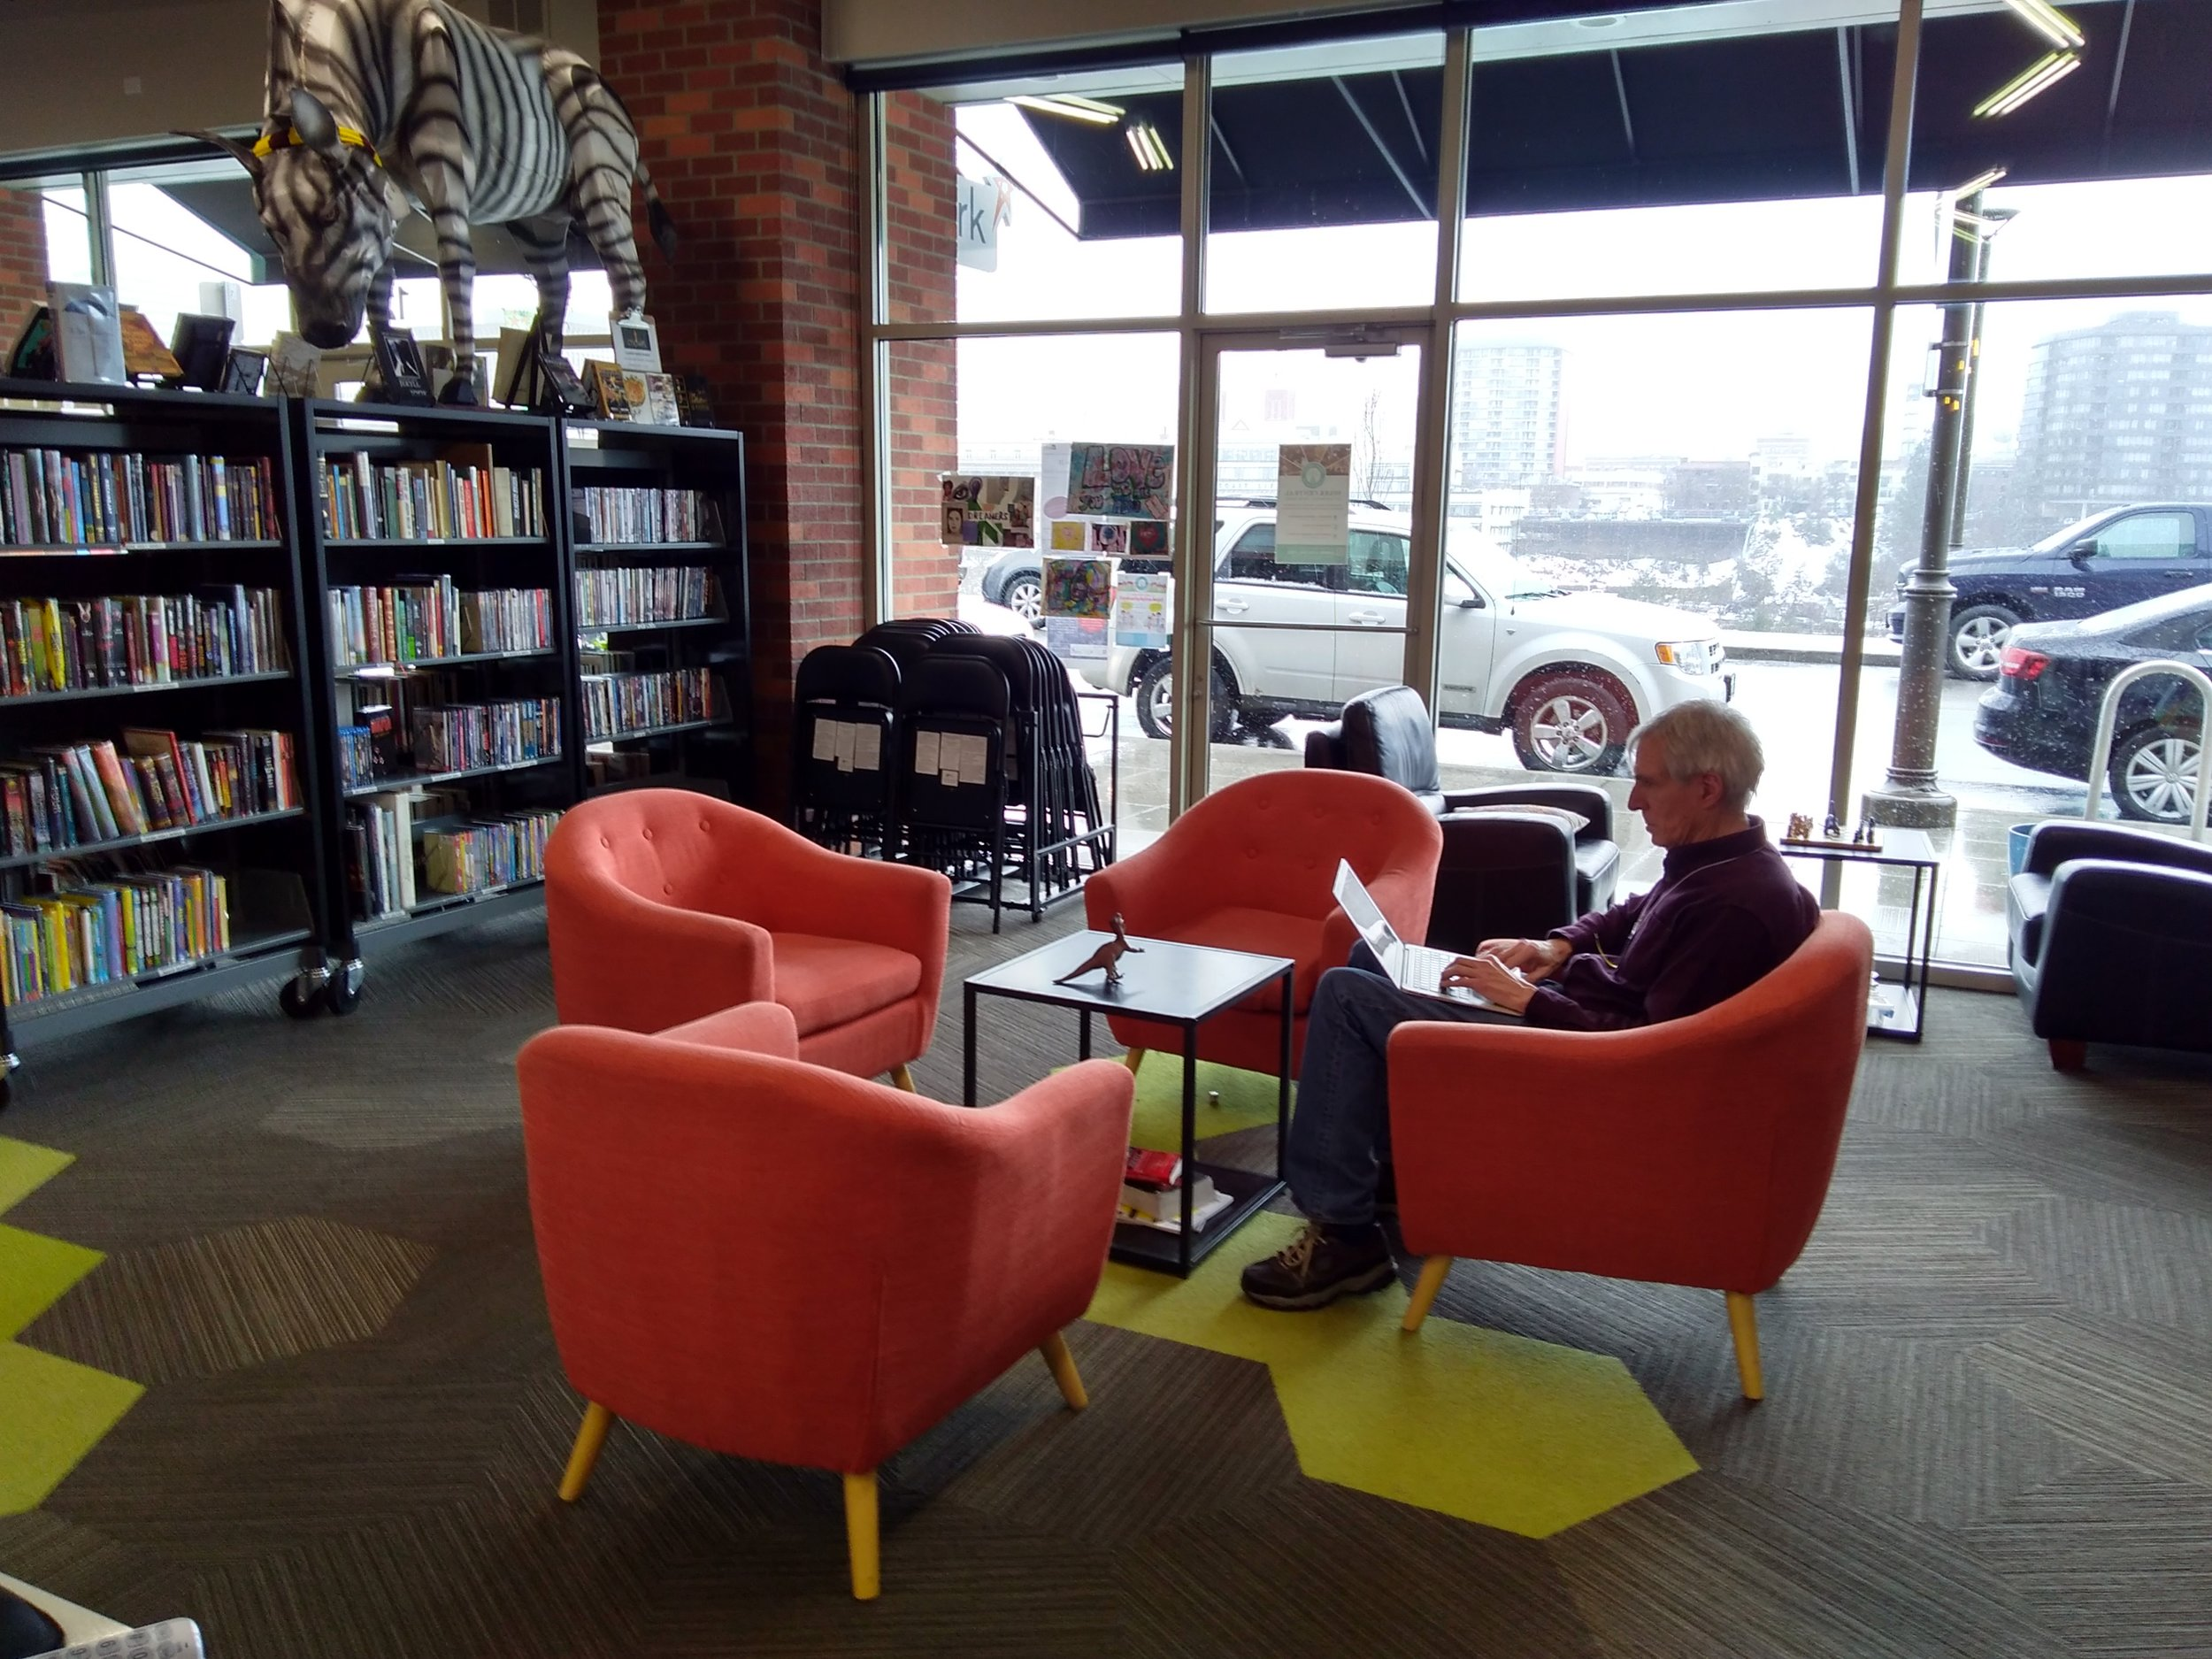 Library Area - Whether they're looking for creative reference materials, DVDs, or the latest children's fiction, visitors are sure to find it in our Library area. Even if reading's not their thing, visitors can spend a quiet afternoon curled up in a comfy chair working on projects, playing table games or enjoying the gorgeous view.